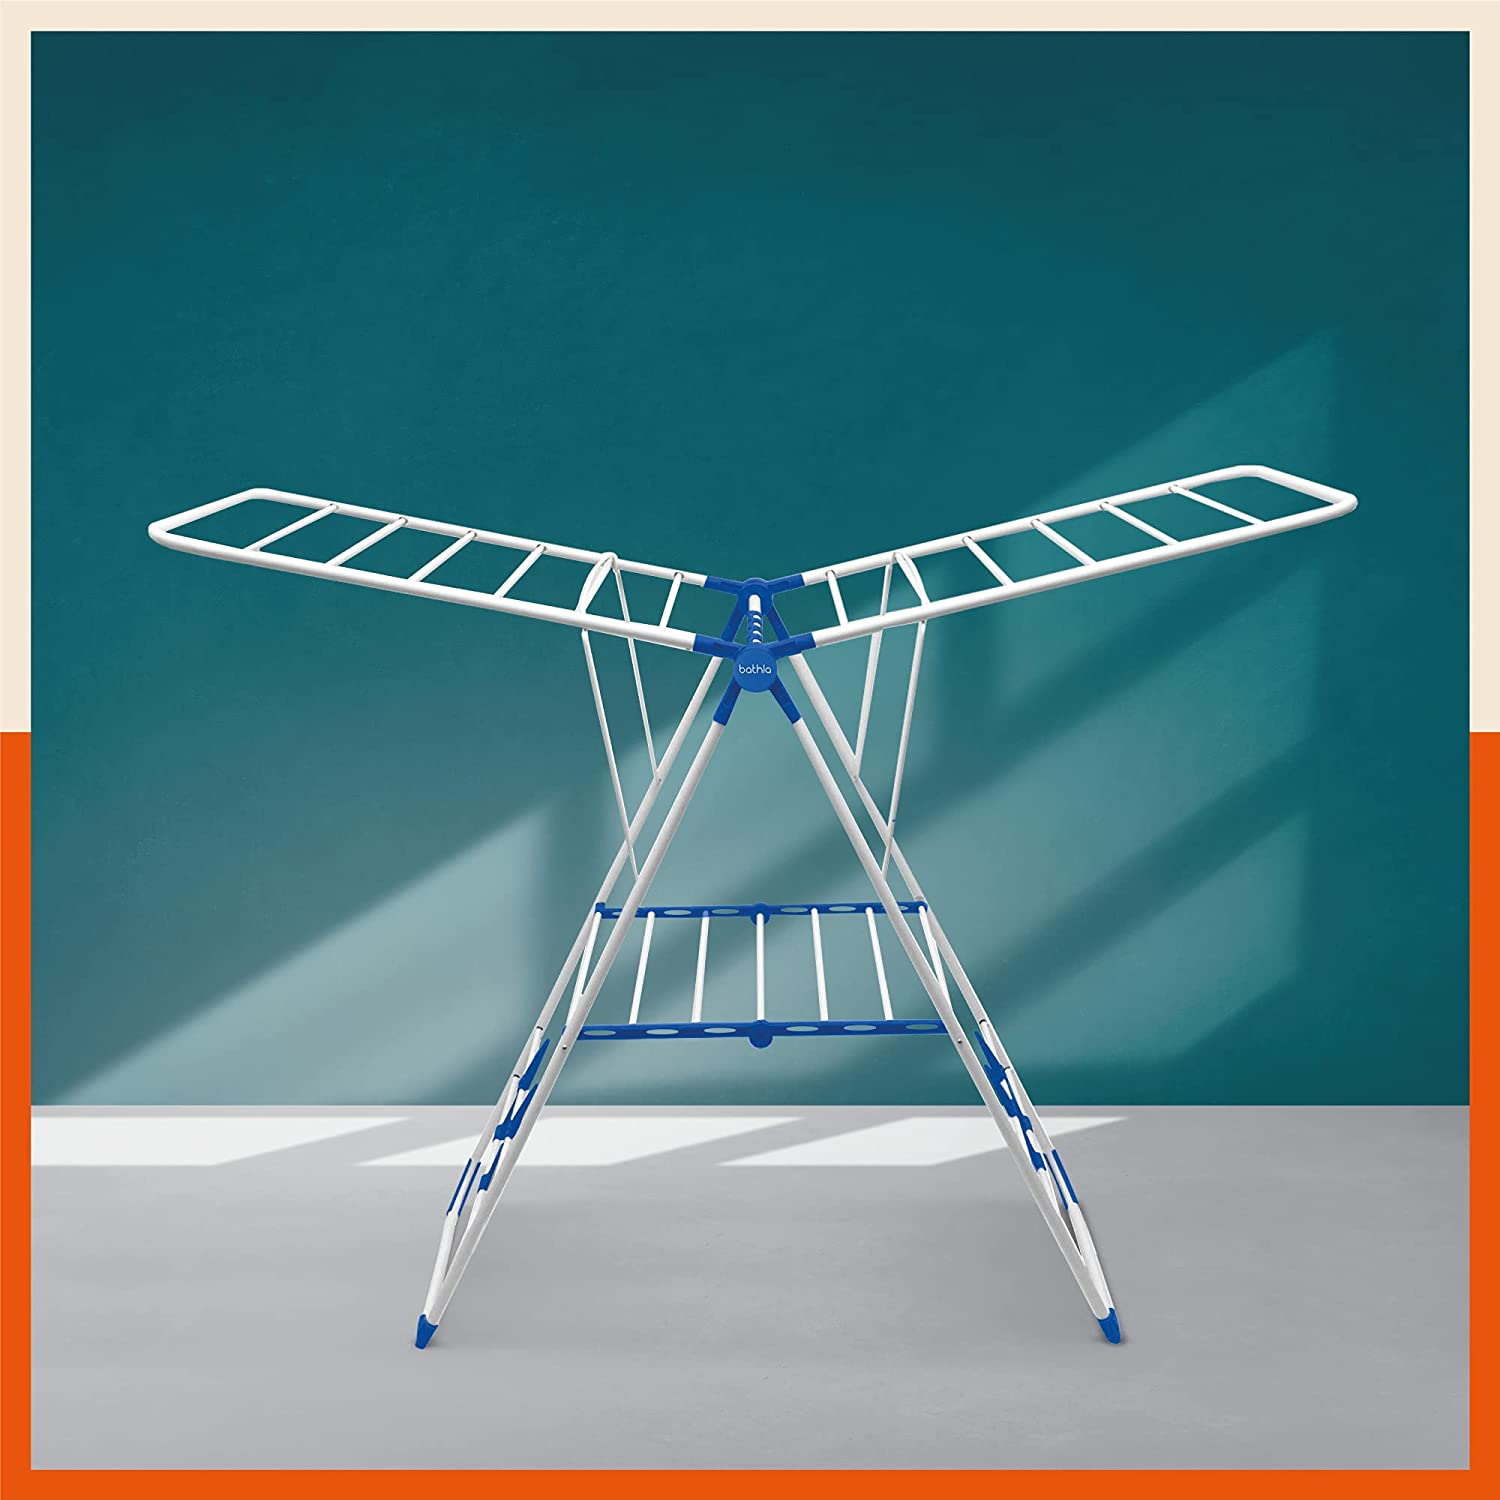 cloth drying stand stainless steel